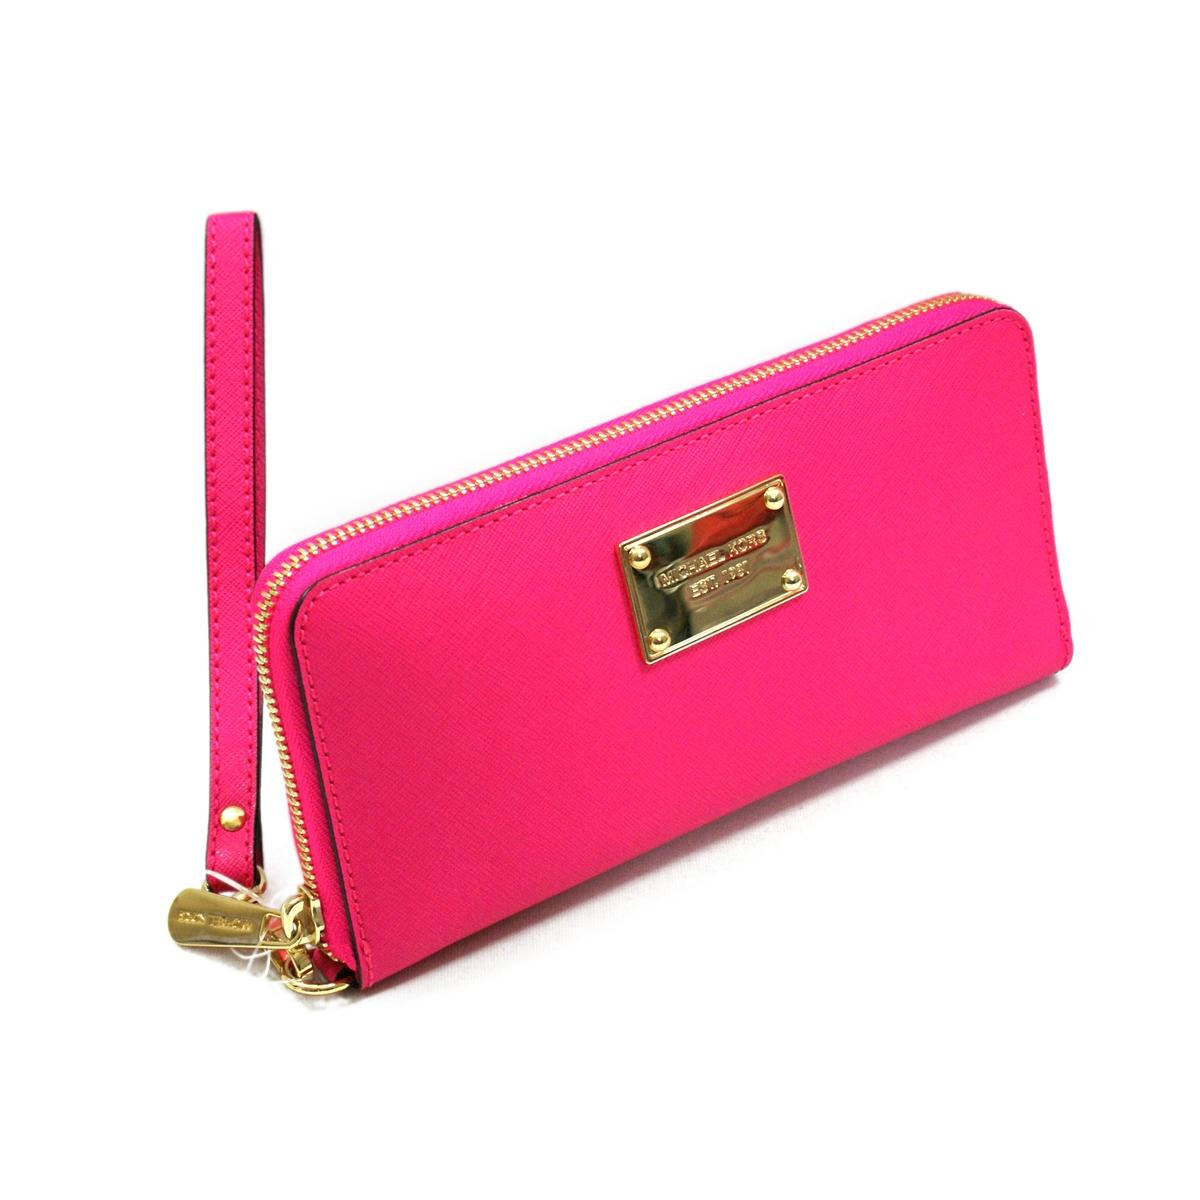 Michael Kors Saffiano Neon Pink Genuine Leather Iphone